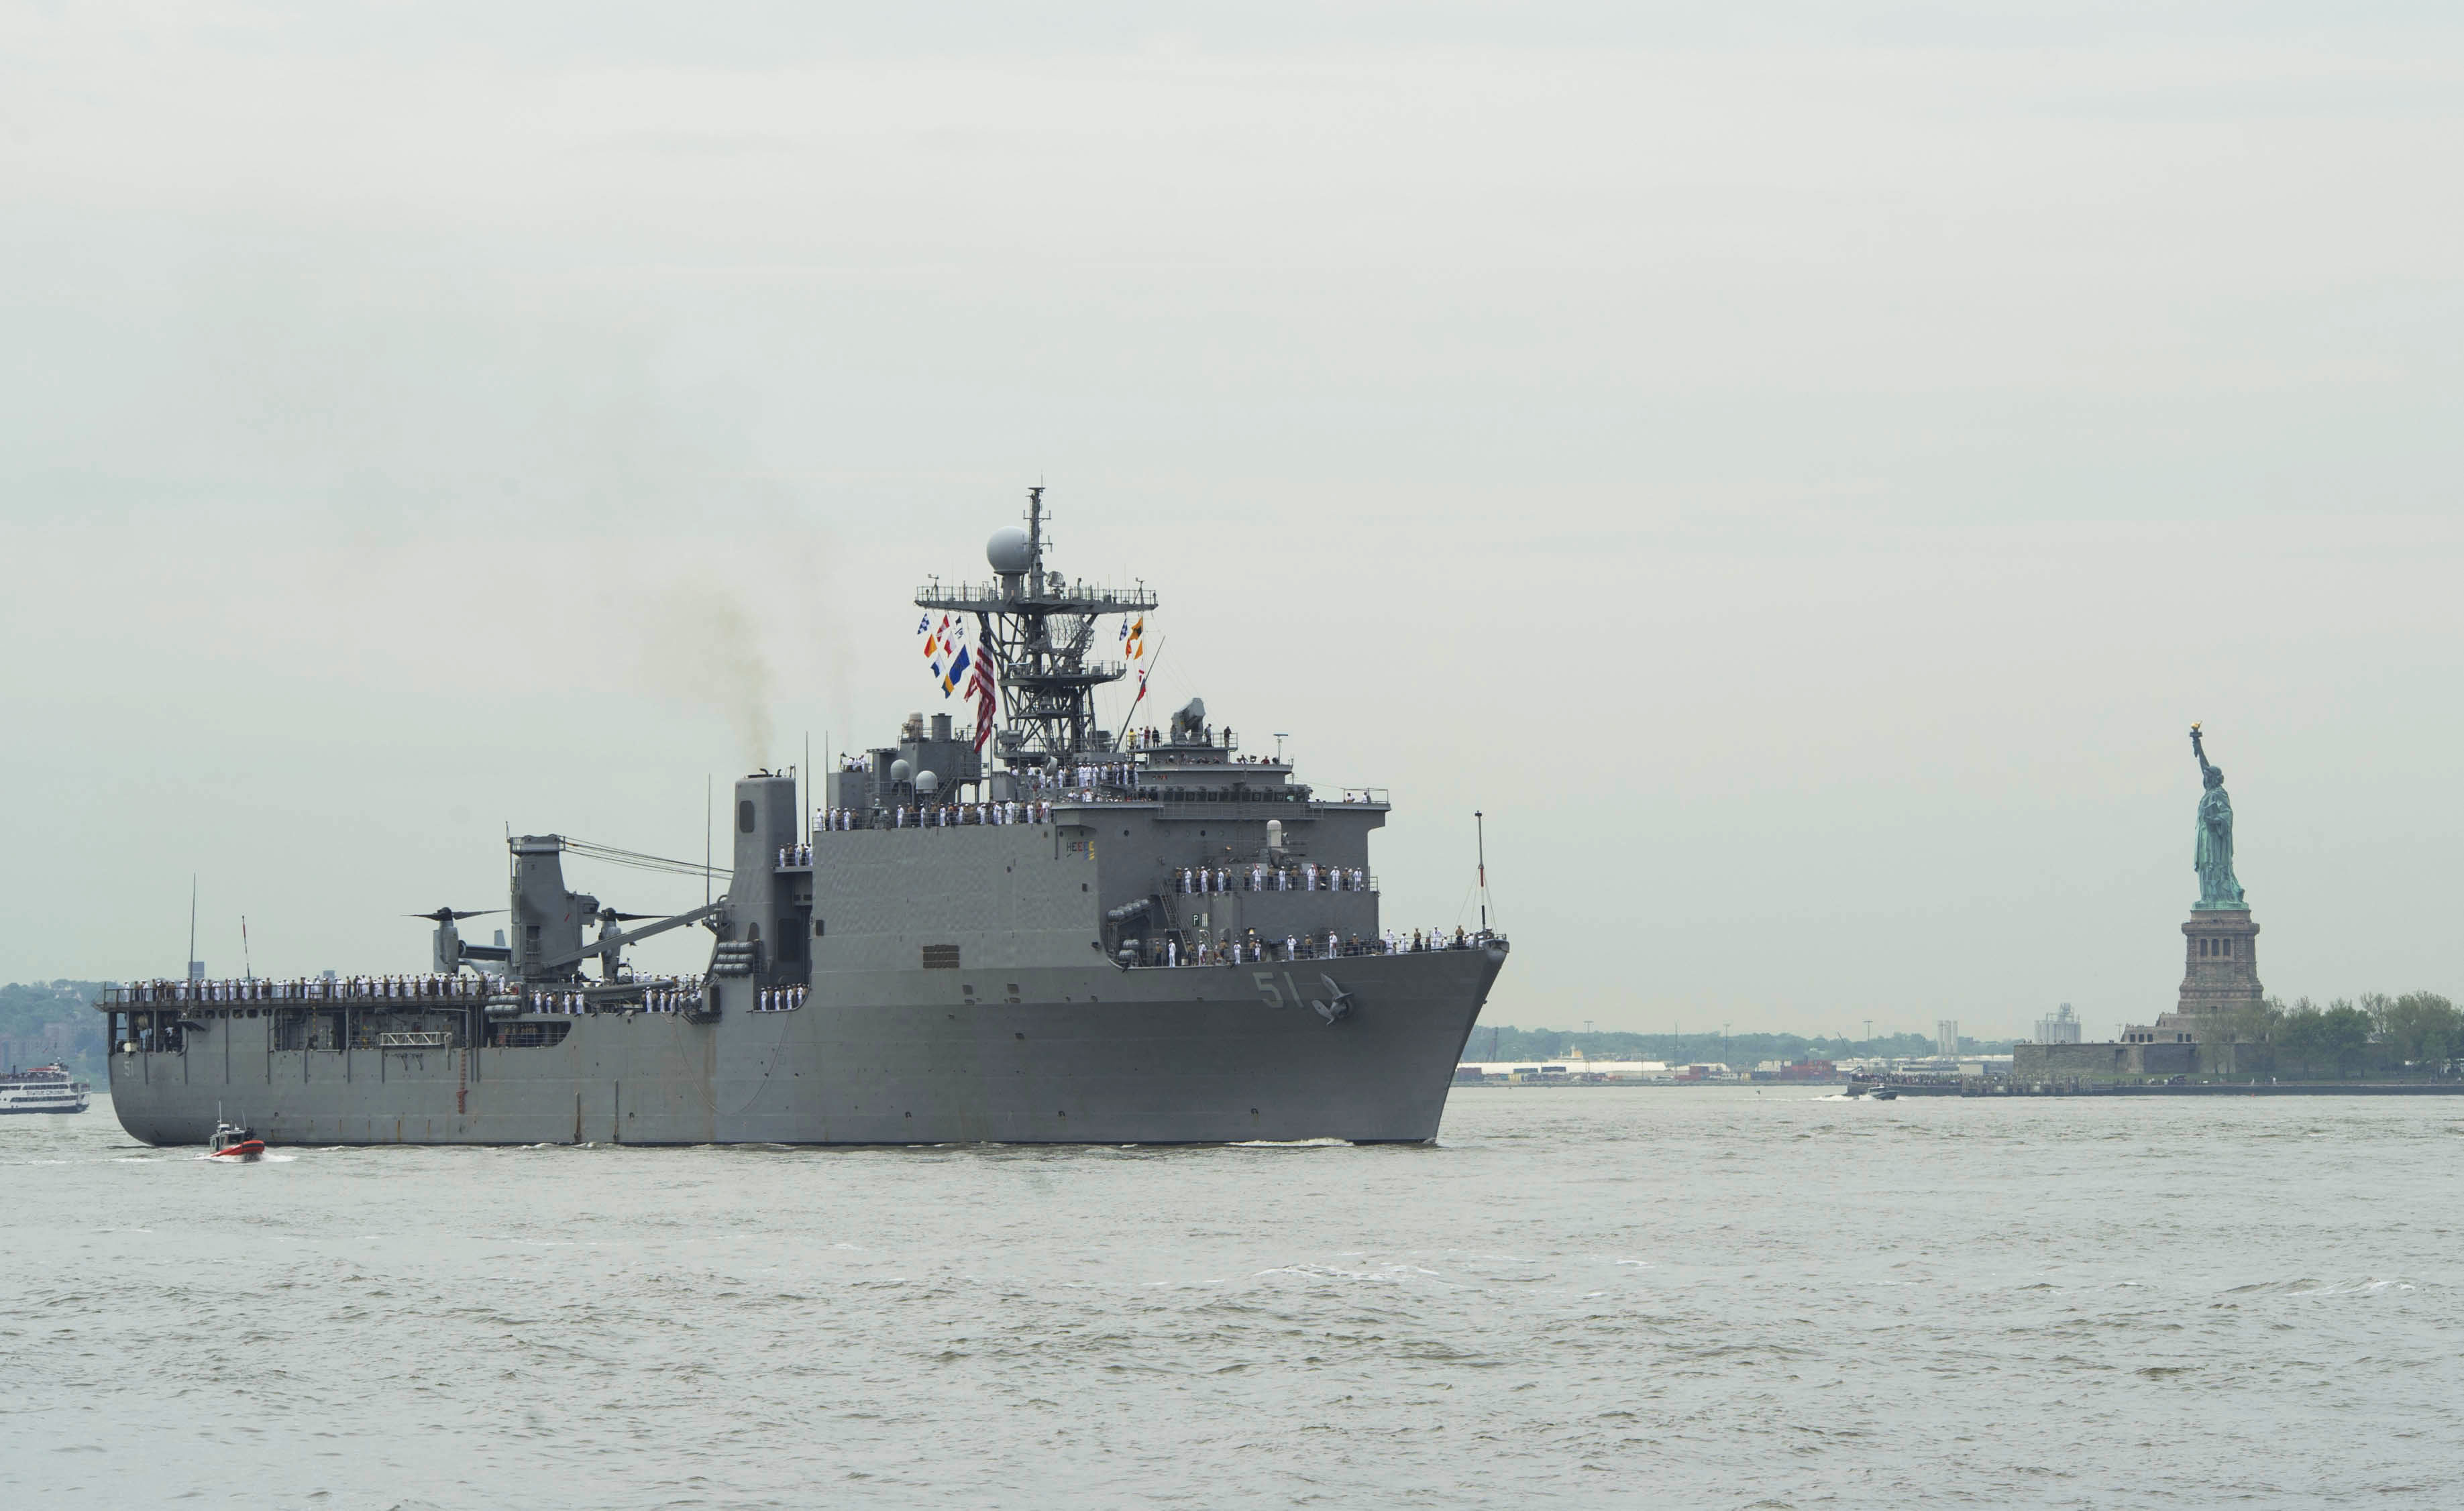 USS OAK HILL LSD-51 Einlaufen New York am 21.05.2014 Bild: U.S. Navy